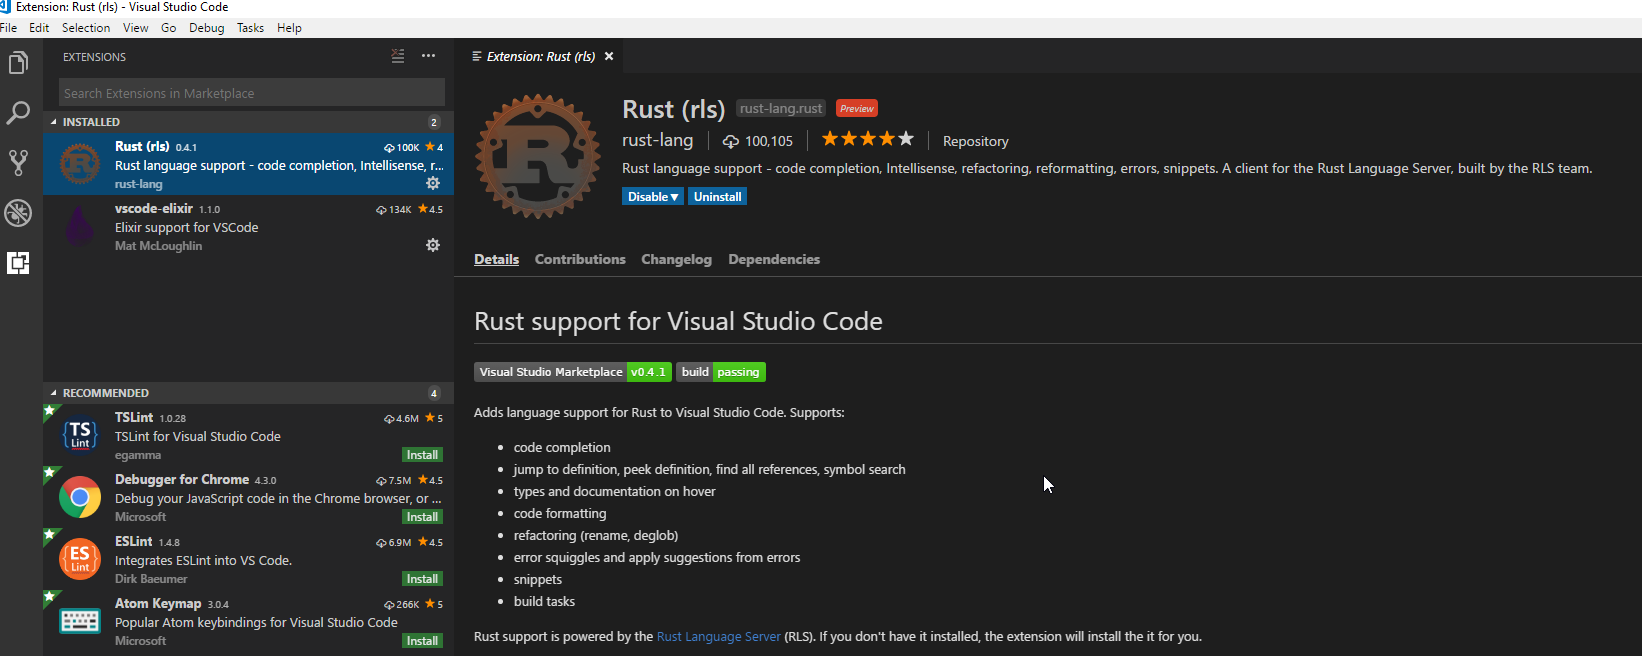 Shows the Rust extension in Visual Studio Code